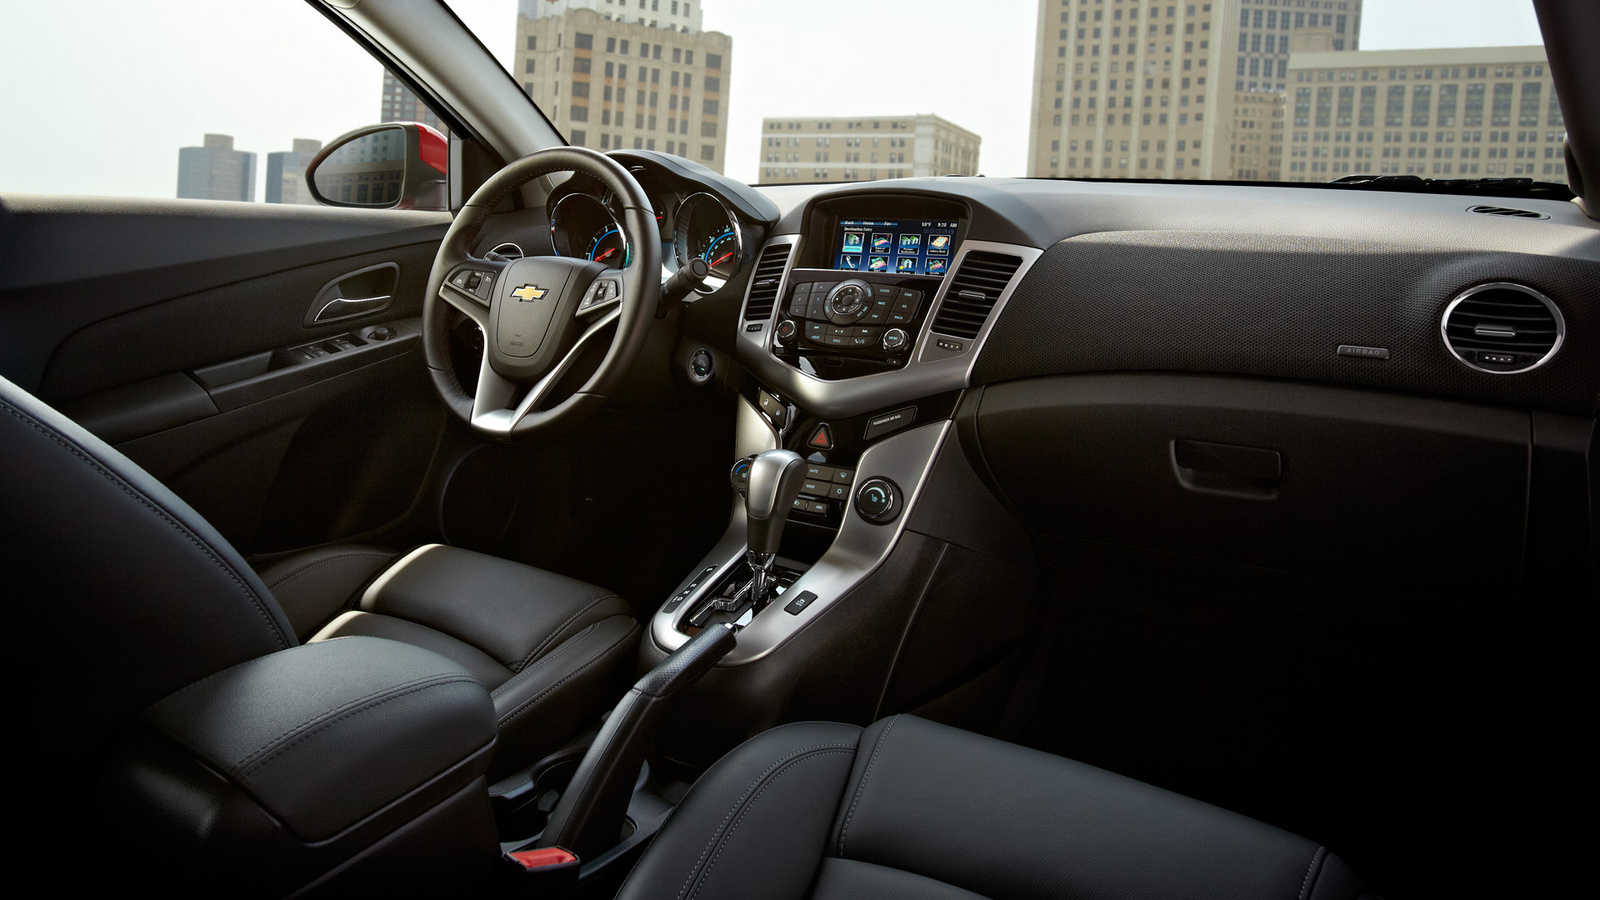 Looking for a Used Cruze in your area?